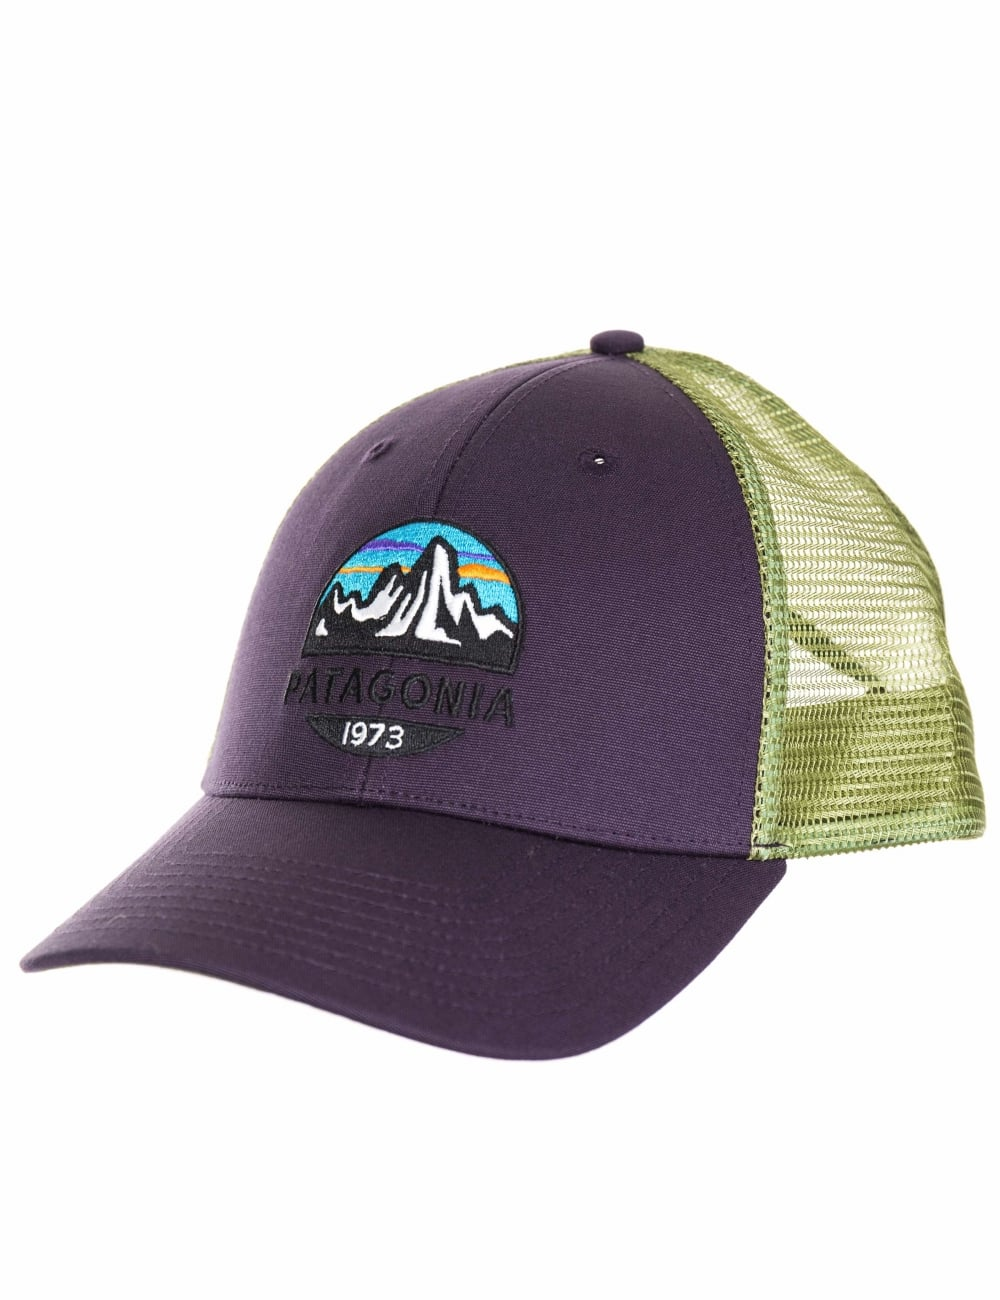 Patagonia Fitz Roy Scope LoPro Trucker Hat - Piton Purple - Hat Shop ... d62bf0f22e8